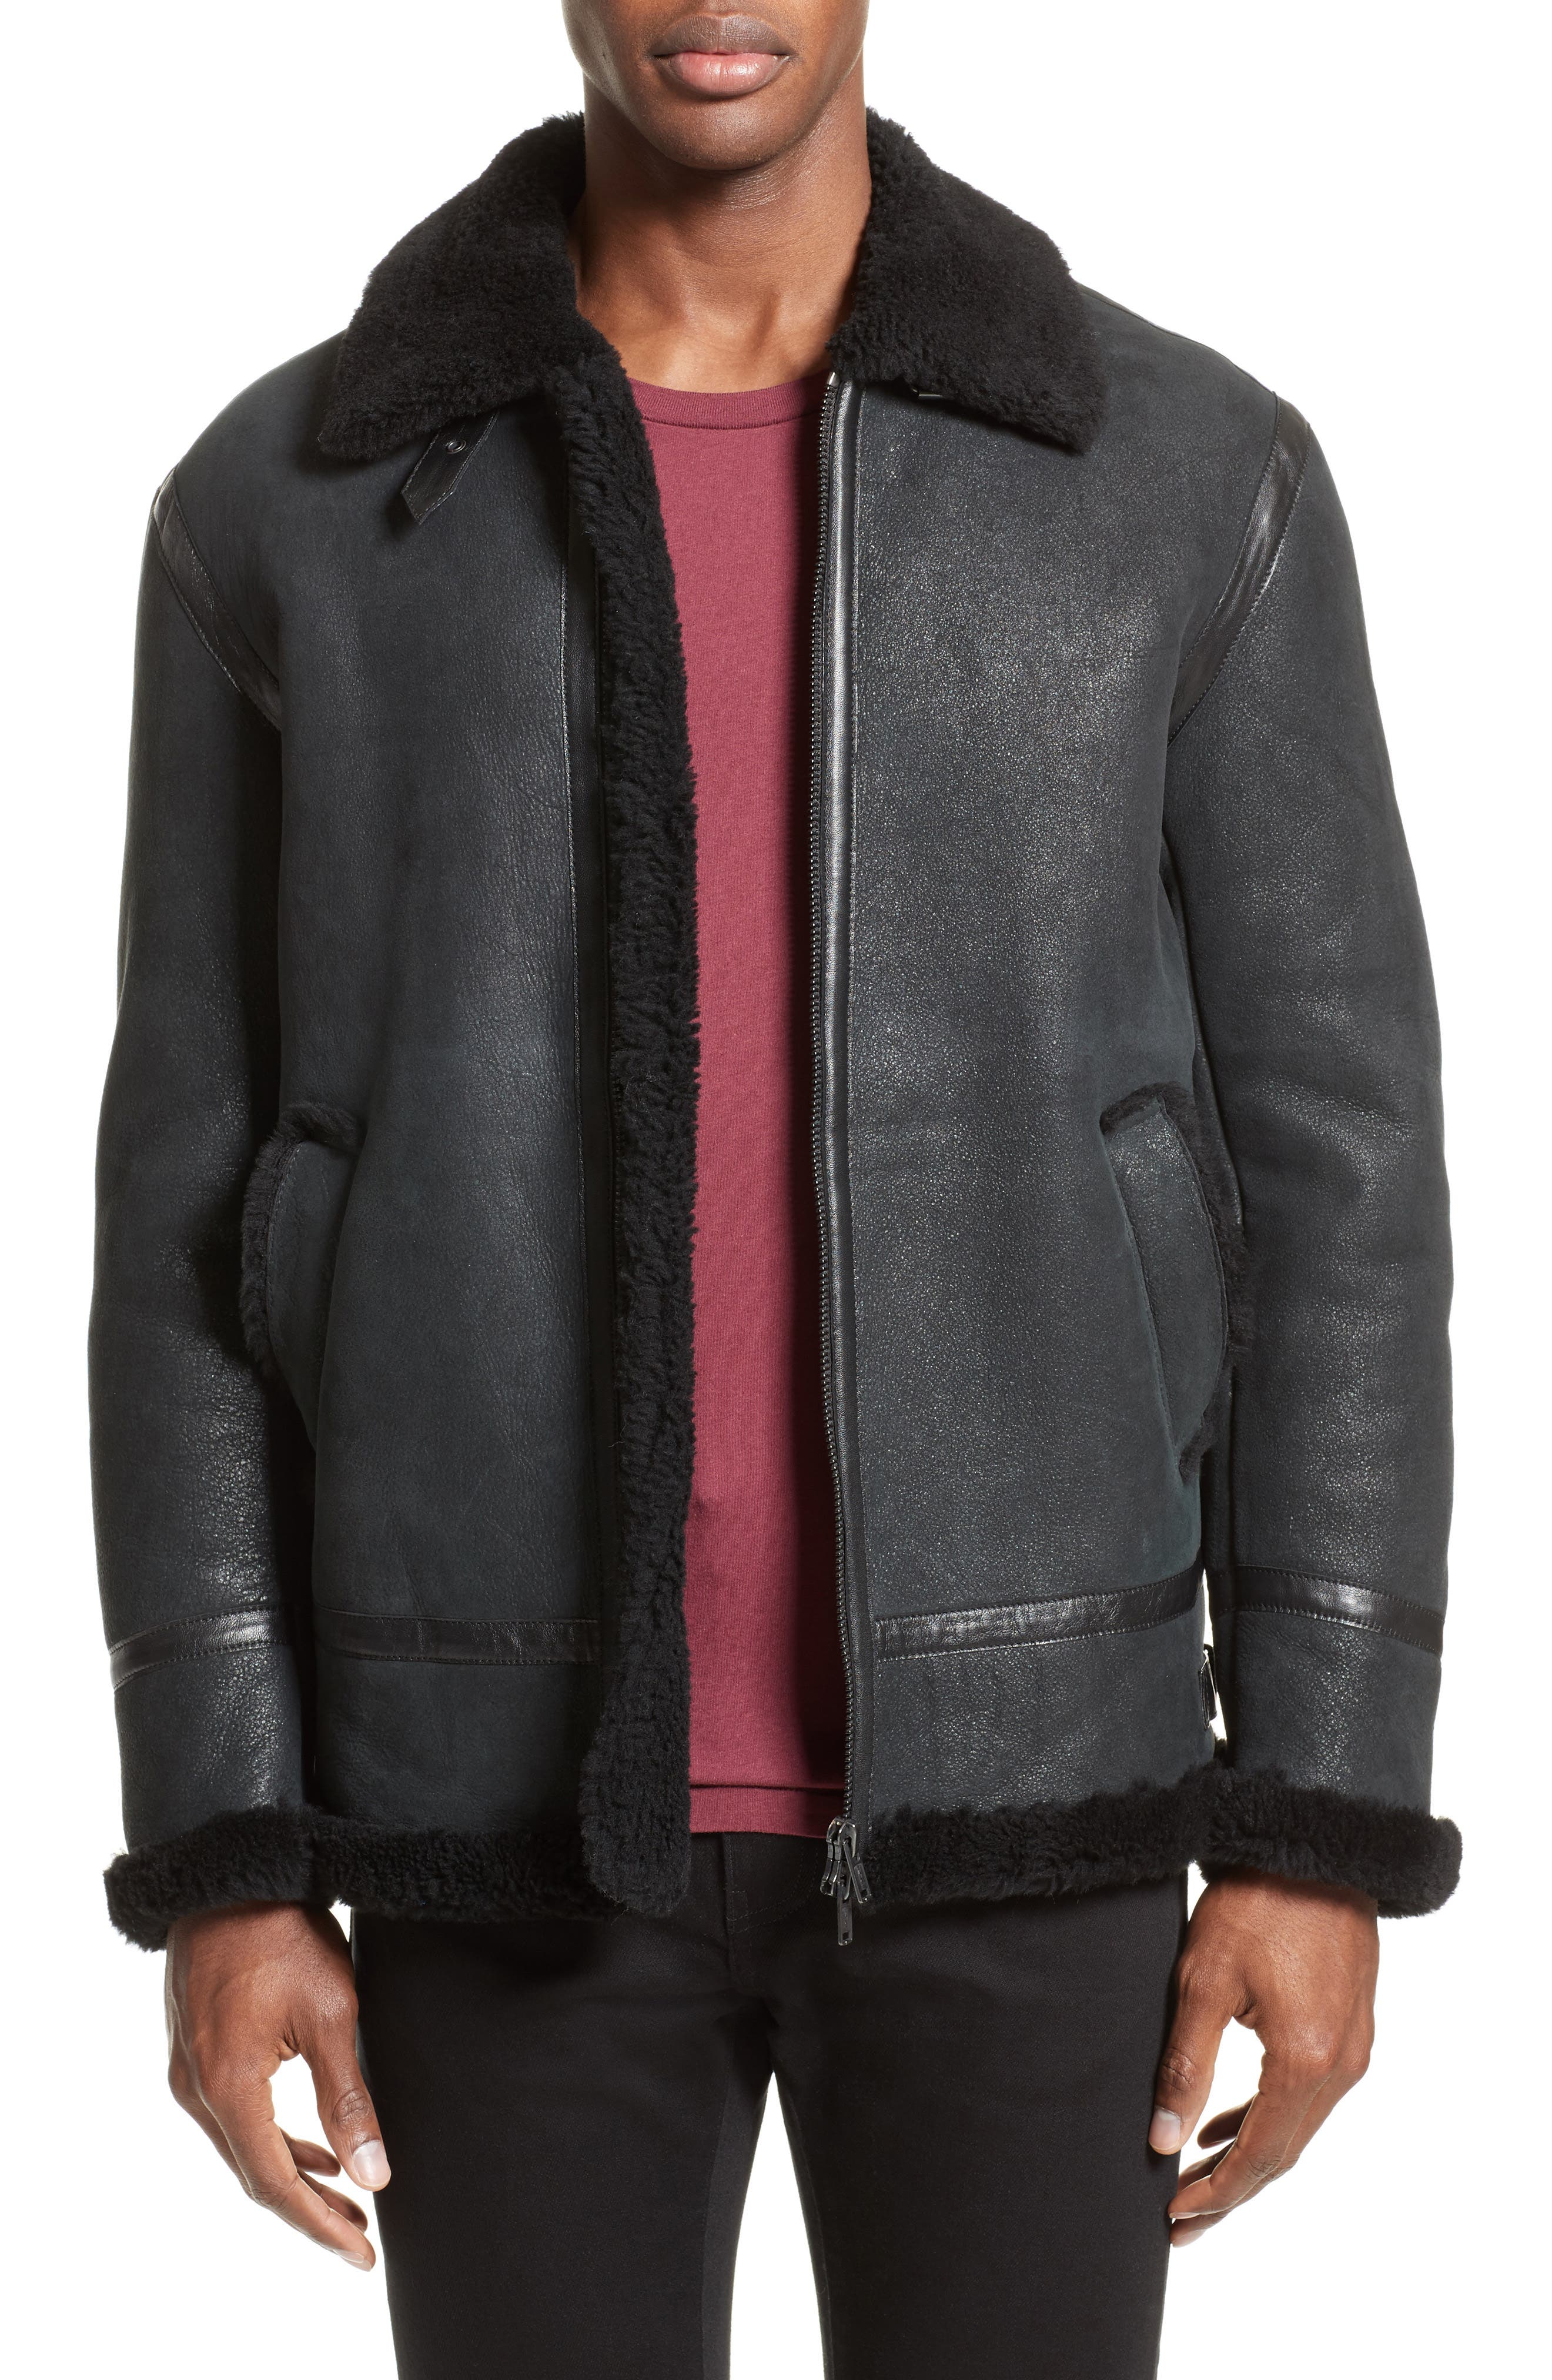 Lamb Shearling Jacket,                             Main thumbnail 1, color,                             001